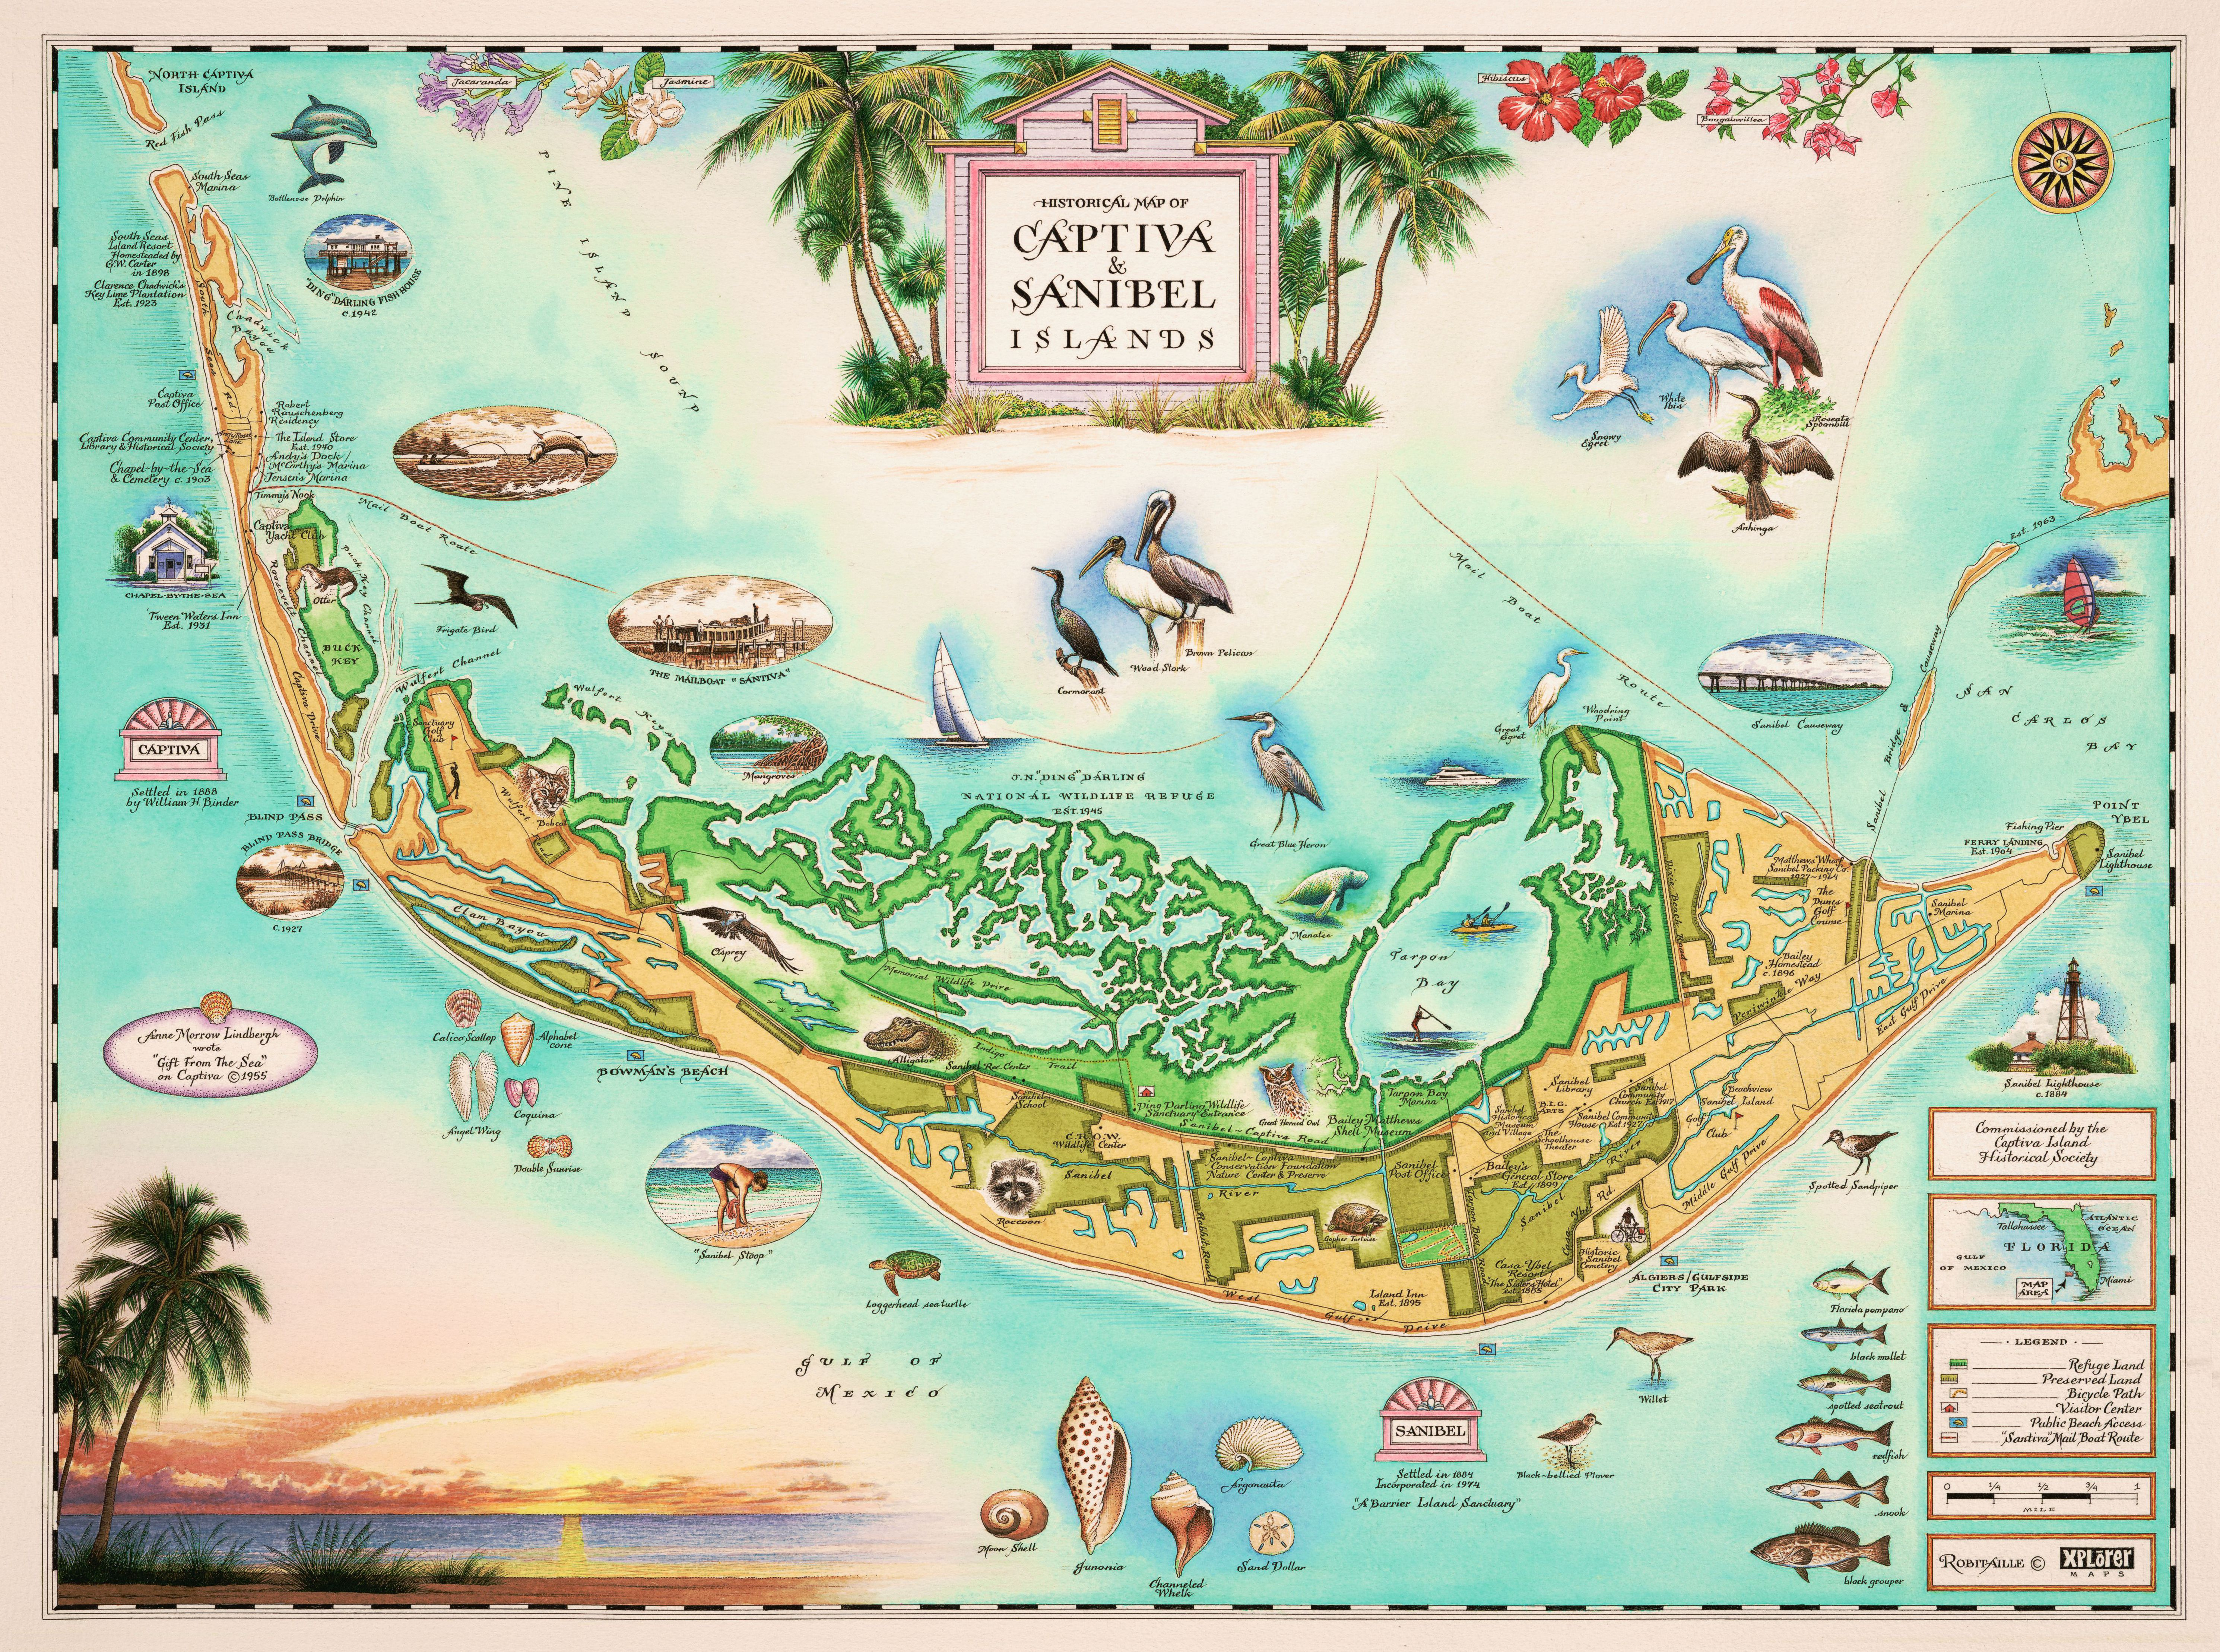 Captiva and Sanibel Islands - Wooden Jigsaw Puzzle - Liberty ... on fort myers map, villas by the sea map, buckingham map, south seas island resort map, st lucie map, martinique on the gulf map, union park map, ft. lauderdale map, alaqua lakes map, captiva map, bowman's beach map, steinhatchee map, florida map, st. augustine map, east coast of the united states map, clewiston map, wellington map, chokoloskee map, pratumnak map, ponce inlet map,